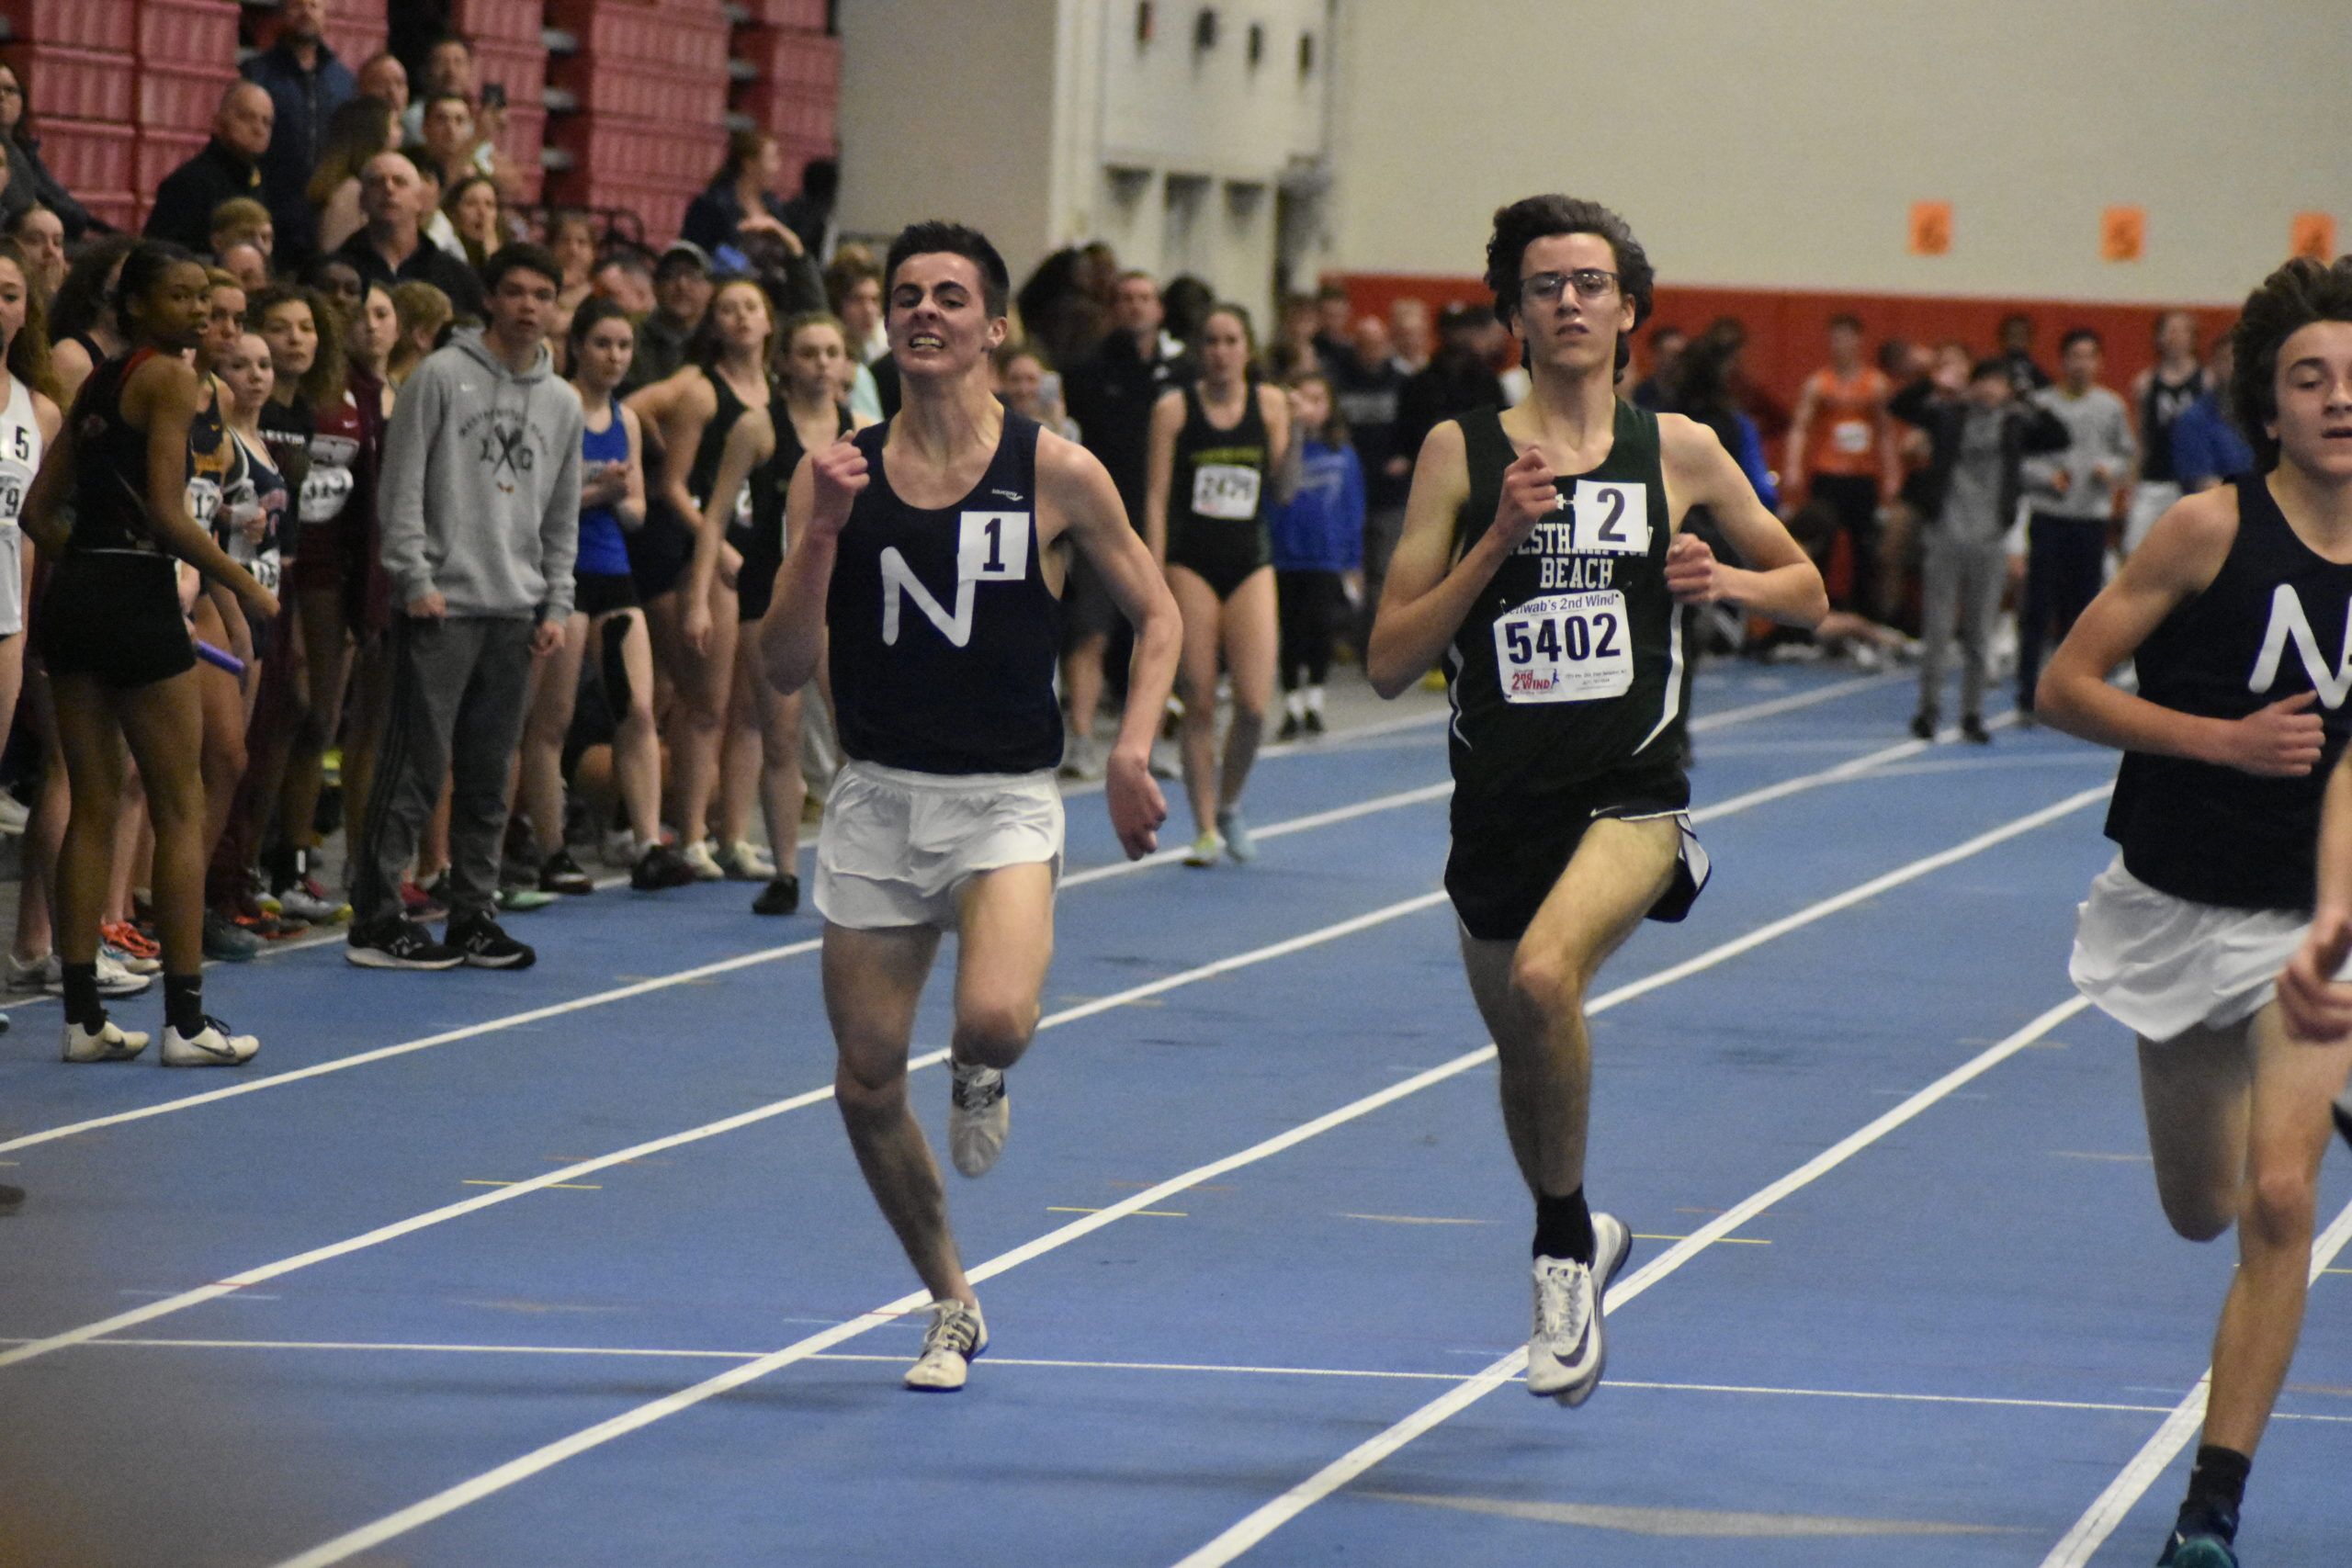 Northport's Thomas Fodor and Gavin Ehlers of Westhampton Beach down the final stretch of the 3,200-meter race.